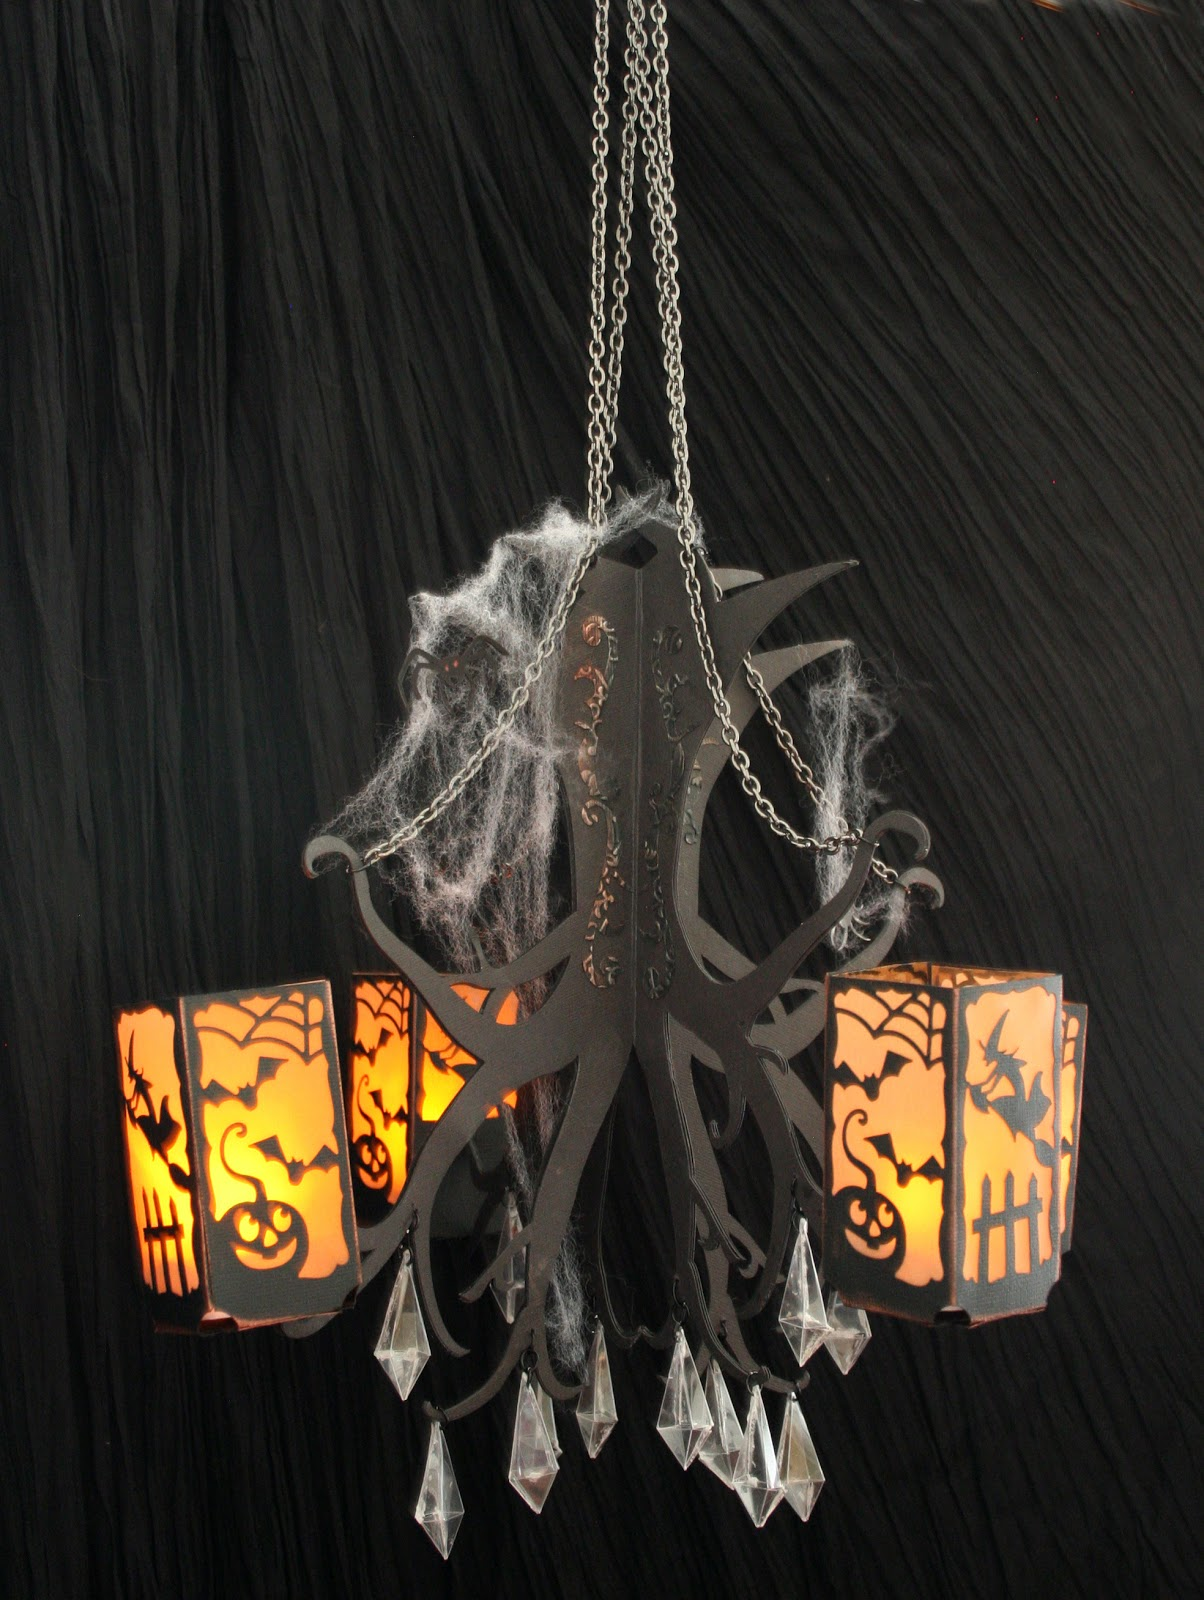 Debs crafty side creepy chandelier the body of the chandelier was the tree used upside down from hazels wicked witch craft i opened the tree in ecal and duplicated it flipped one over mozeypictures Gallery